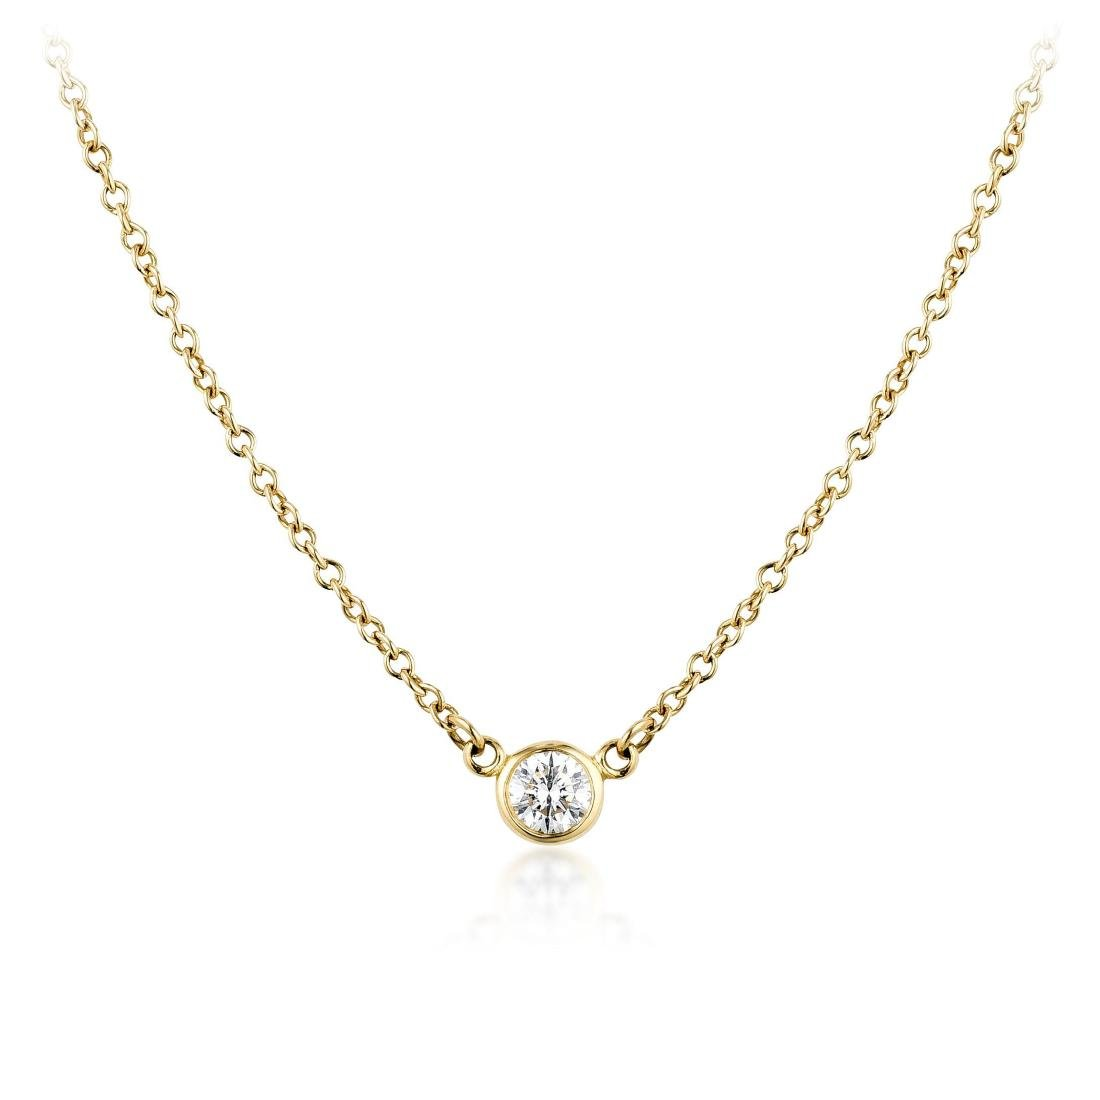 Tiffany & Co. Elsa Peretti Diamond Necklace